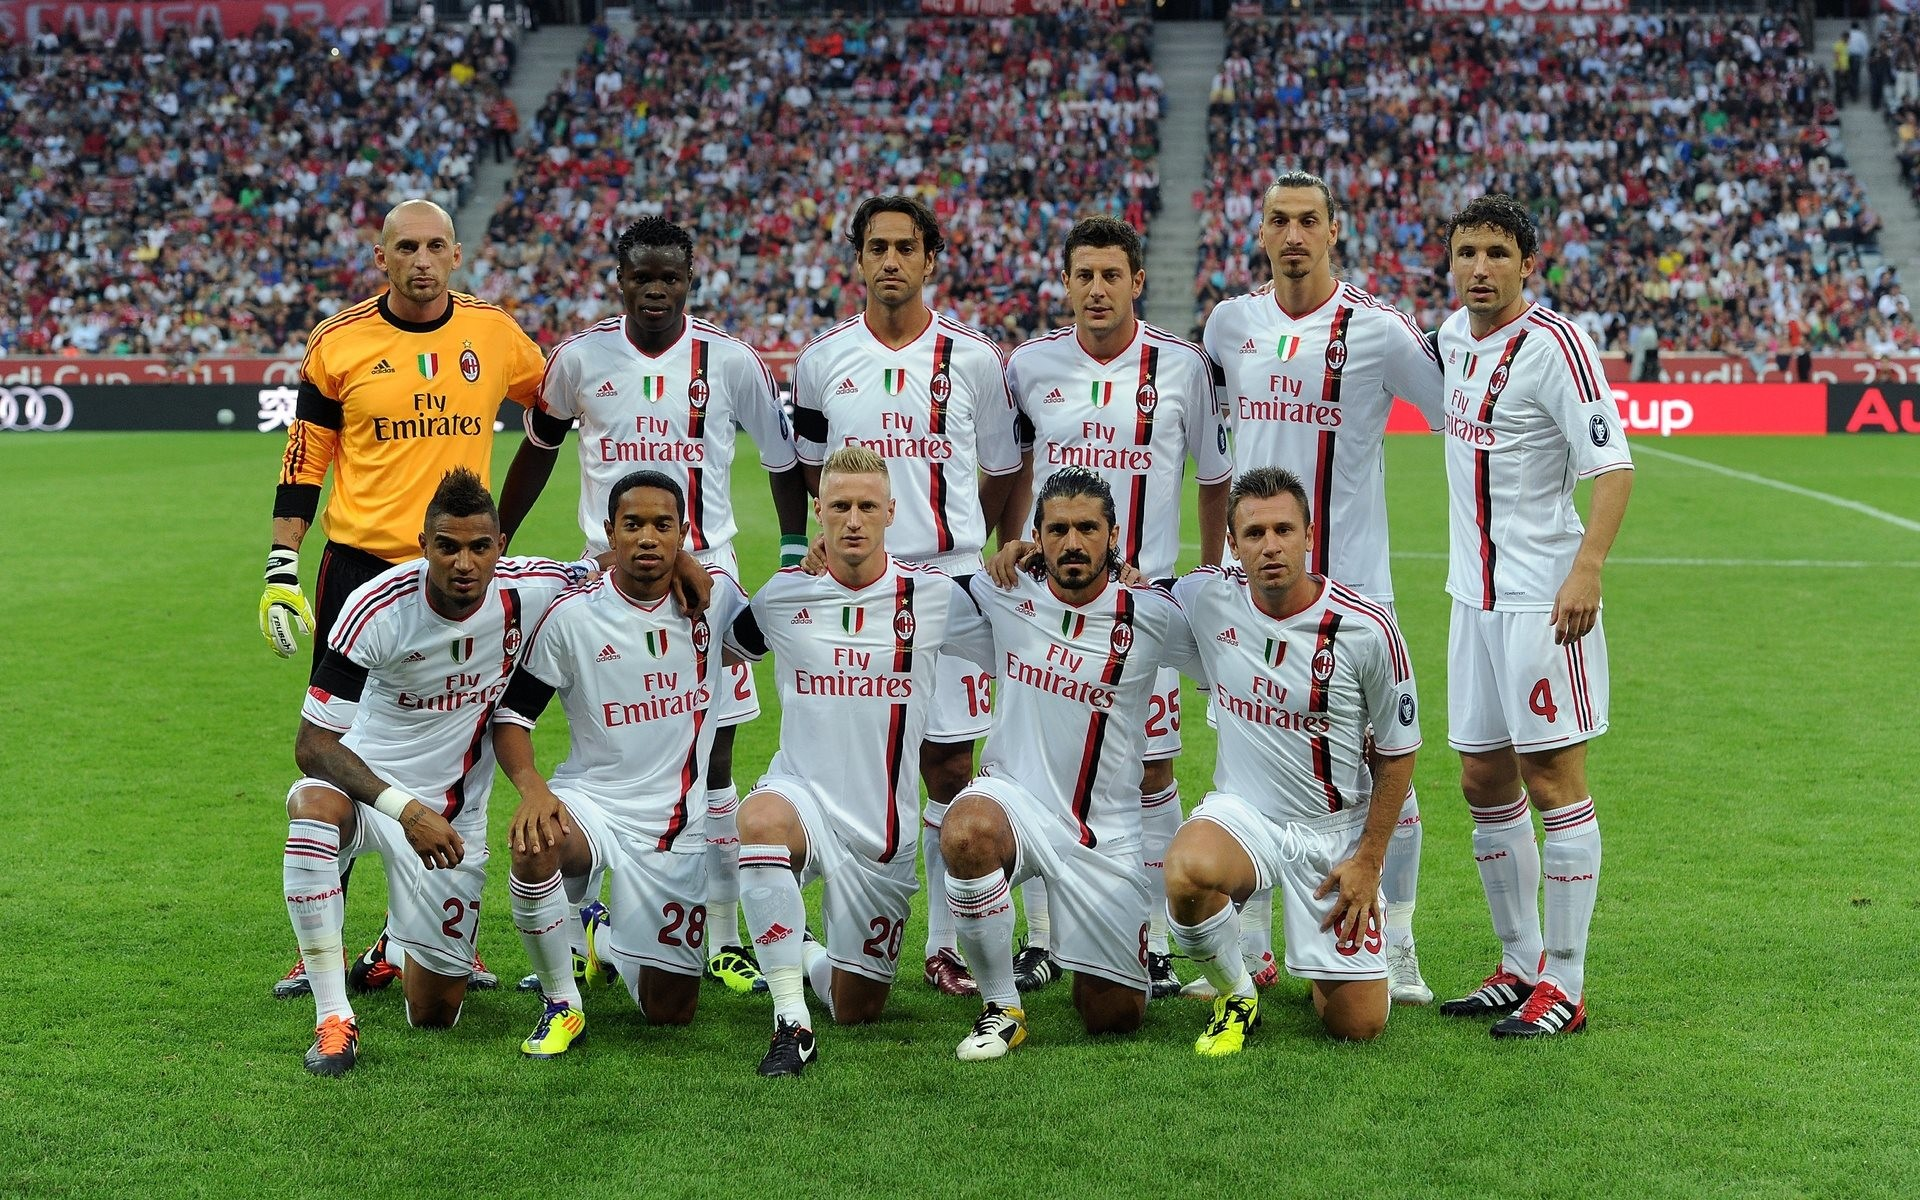 ac milan football team photos hd wallpapers desktop images download windows  wallpapers amazing colourful 4k picture